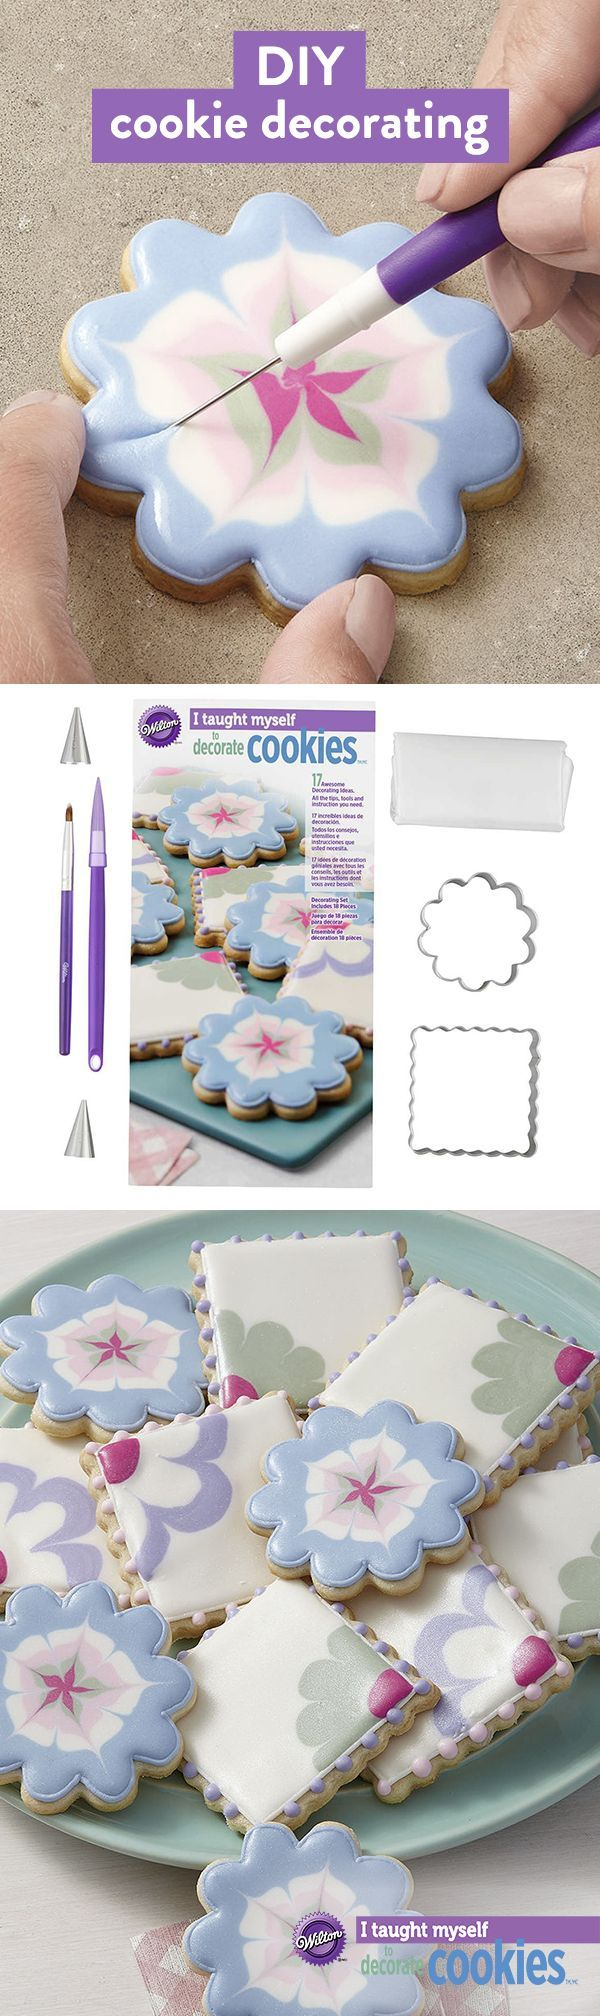 Learn how to decorate cookies with royal icing using this easy DIY set. The I Taught Myself Cookie Decorating Book Set features inspiring projects featuring step-by-step instructions with pictures. It also comes with all the tools you need to get straight to the fun of decorating. Plus, you'll get 24/7 access to the I Taught Myself video library for project tutorials and the inside scoop from our expert's tips.